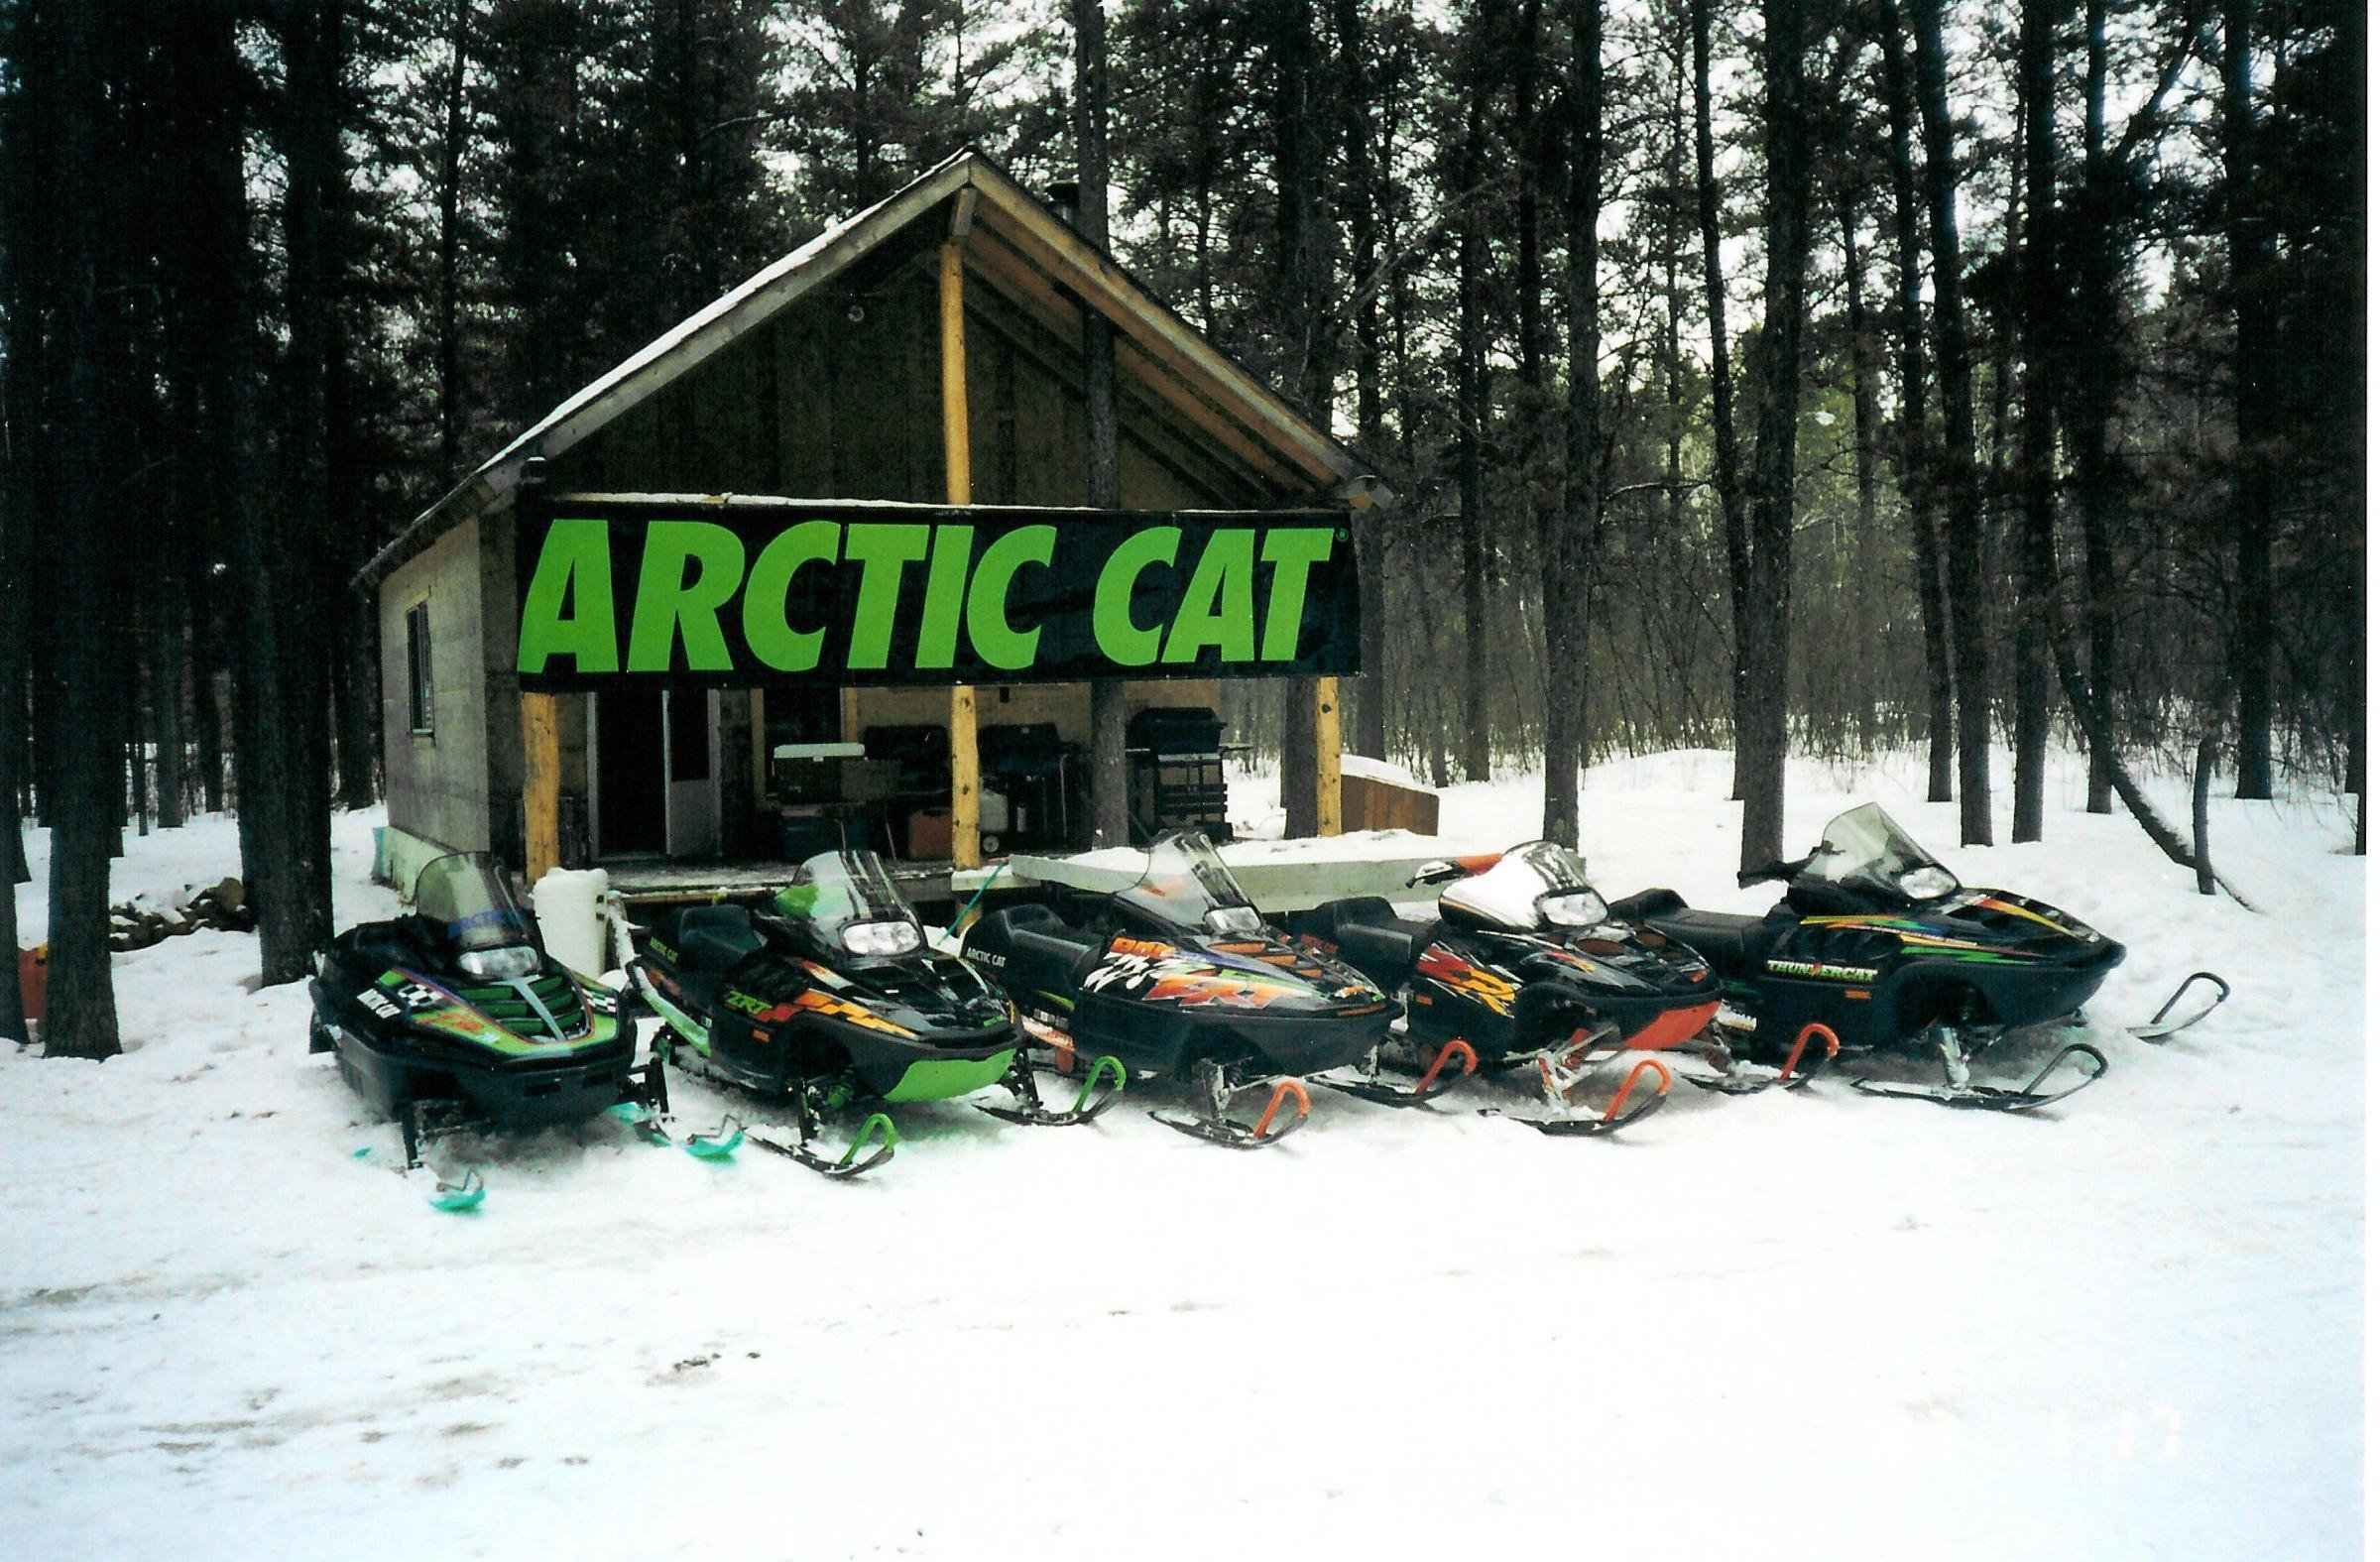 Thumbnail 2005 Arctic Cat BearCat Widetrack 660  PDF Service/Shop Repair Manual Download